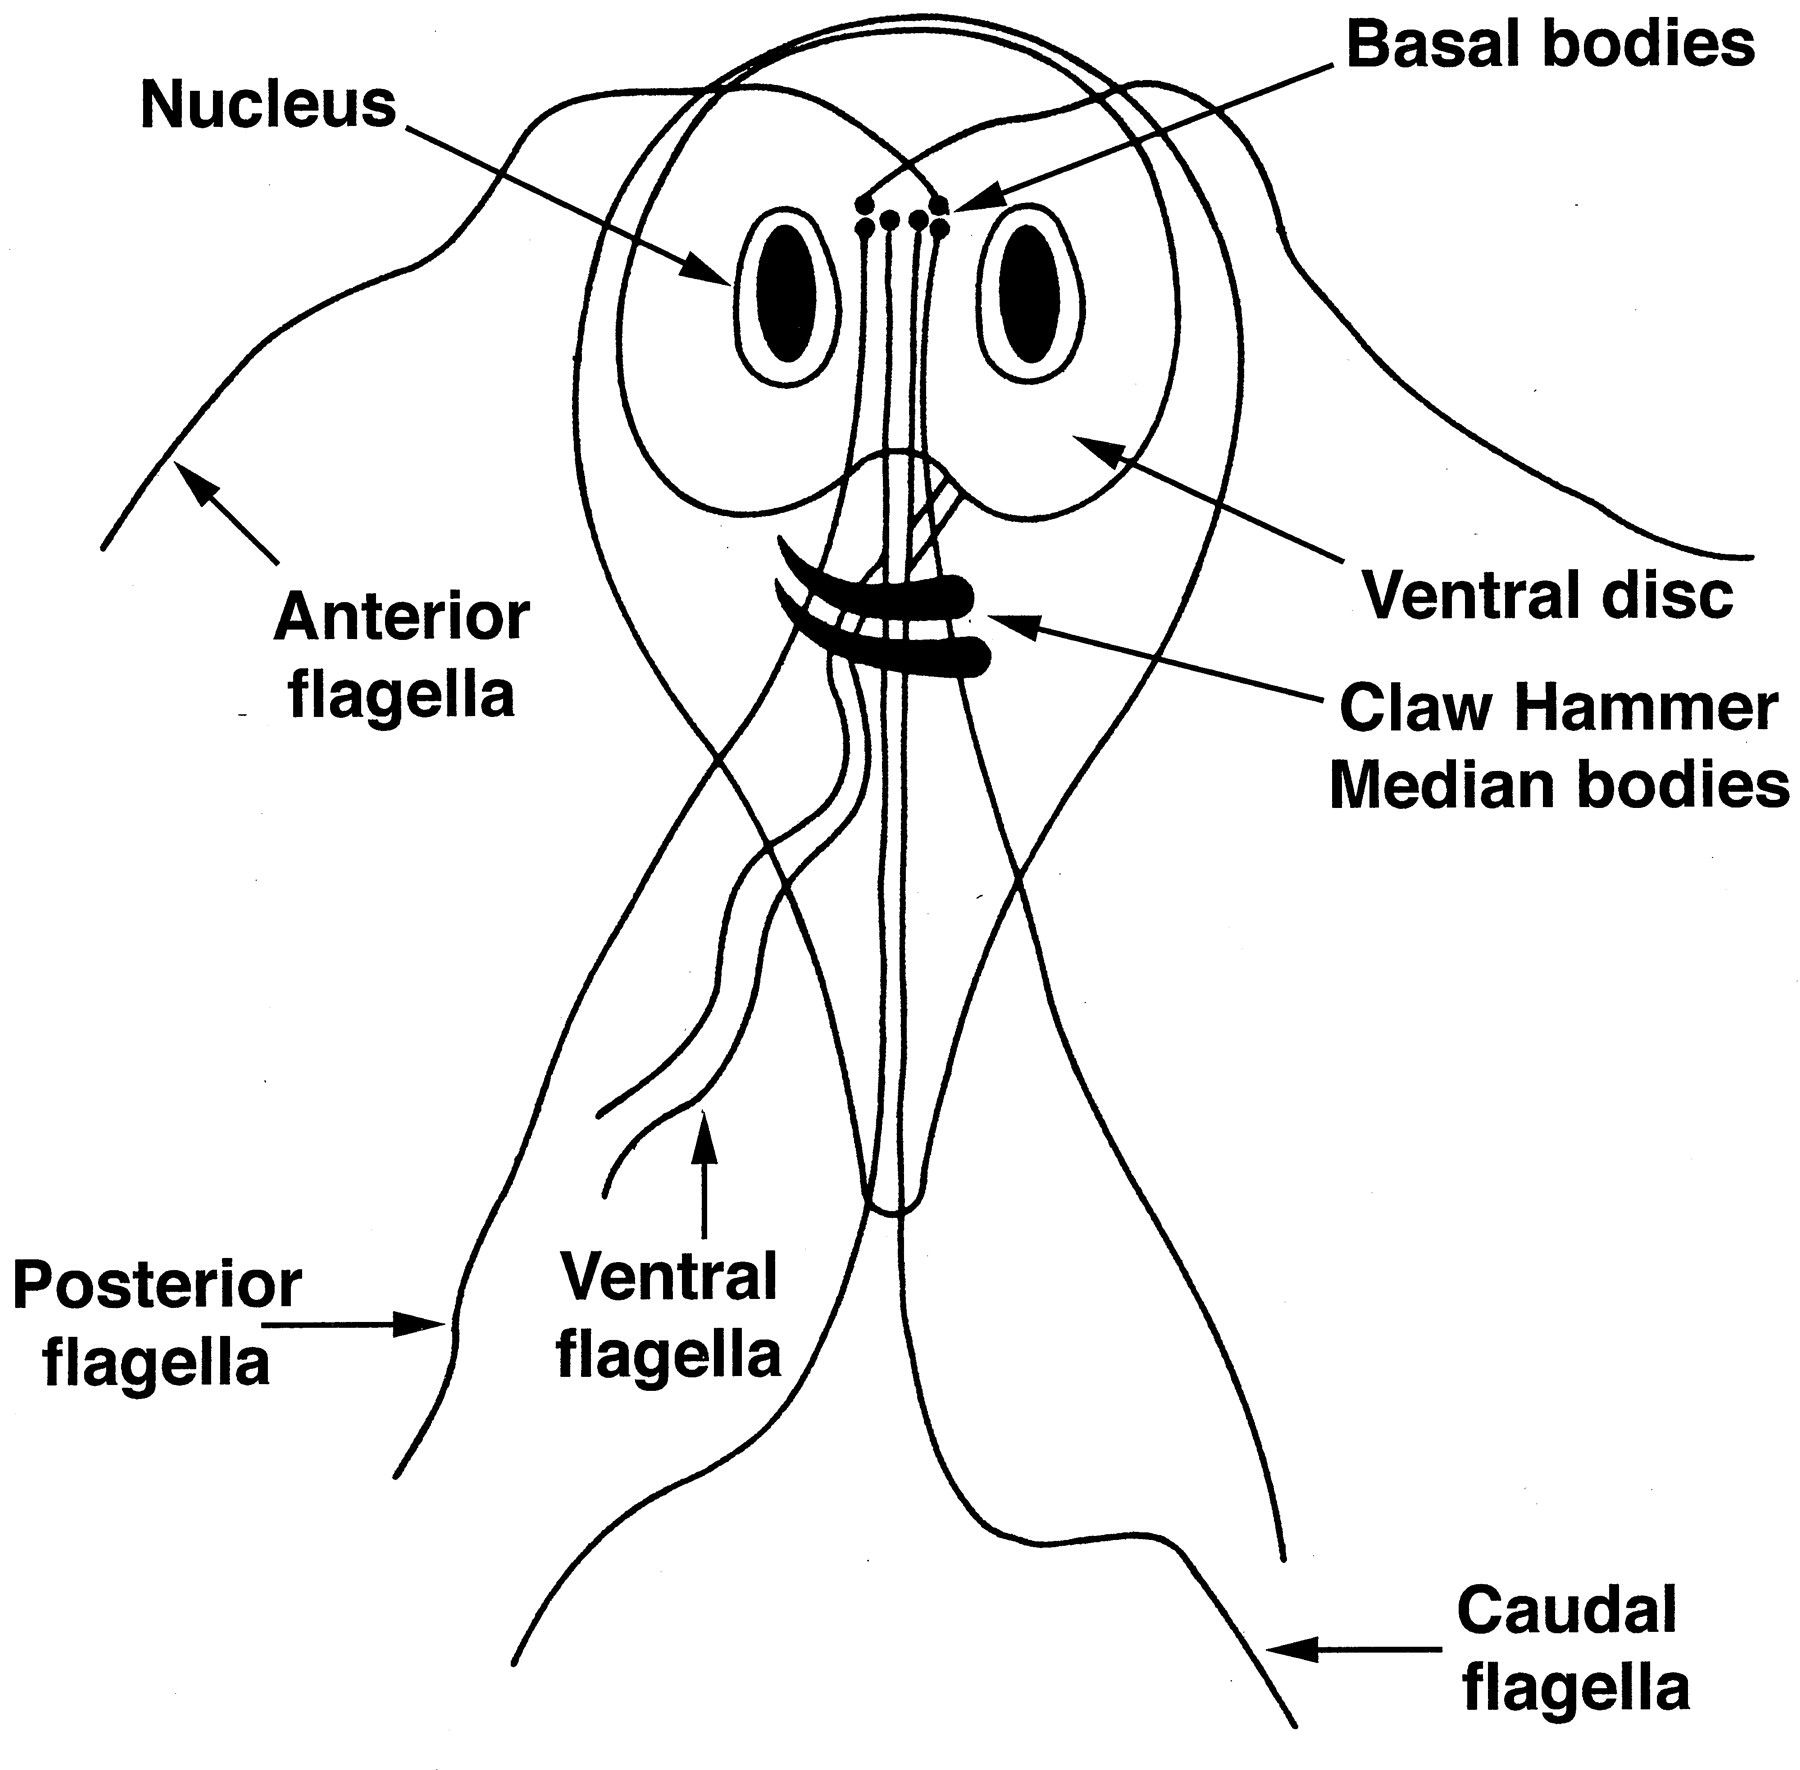 This Is An Image Of Giardia. Giardiasis Is A Disease In